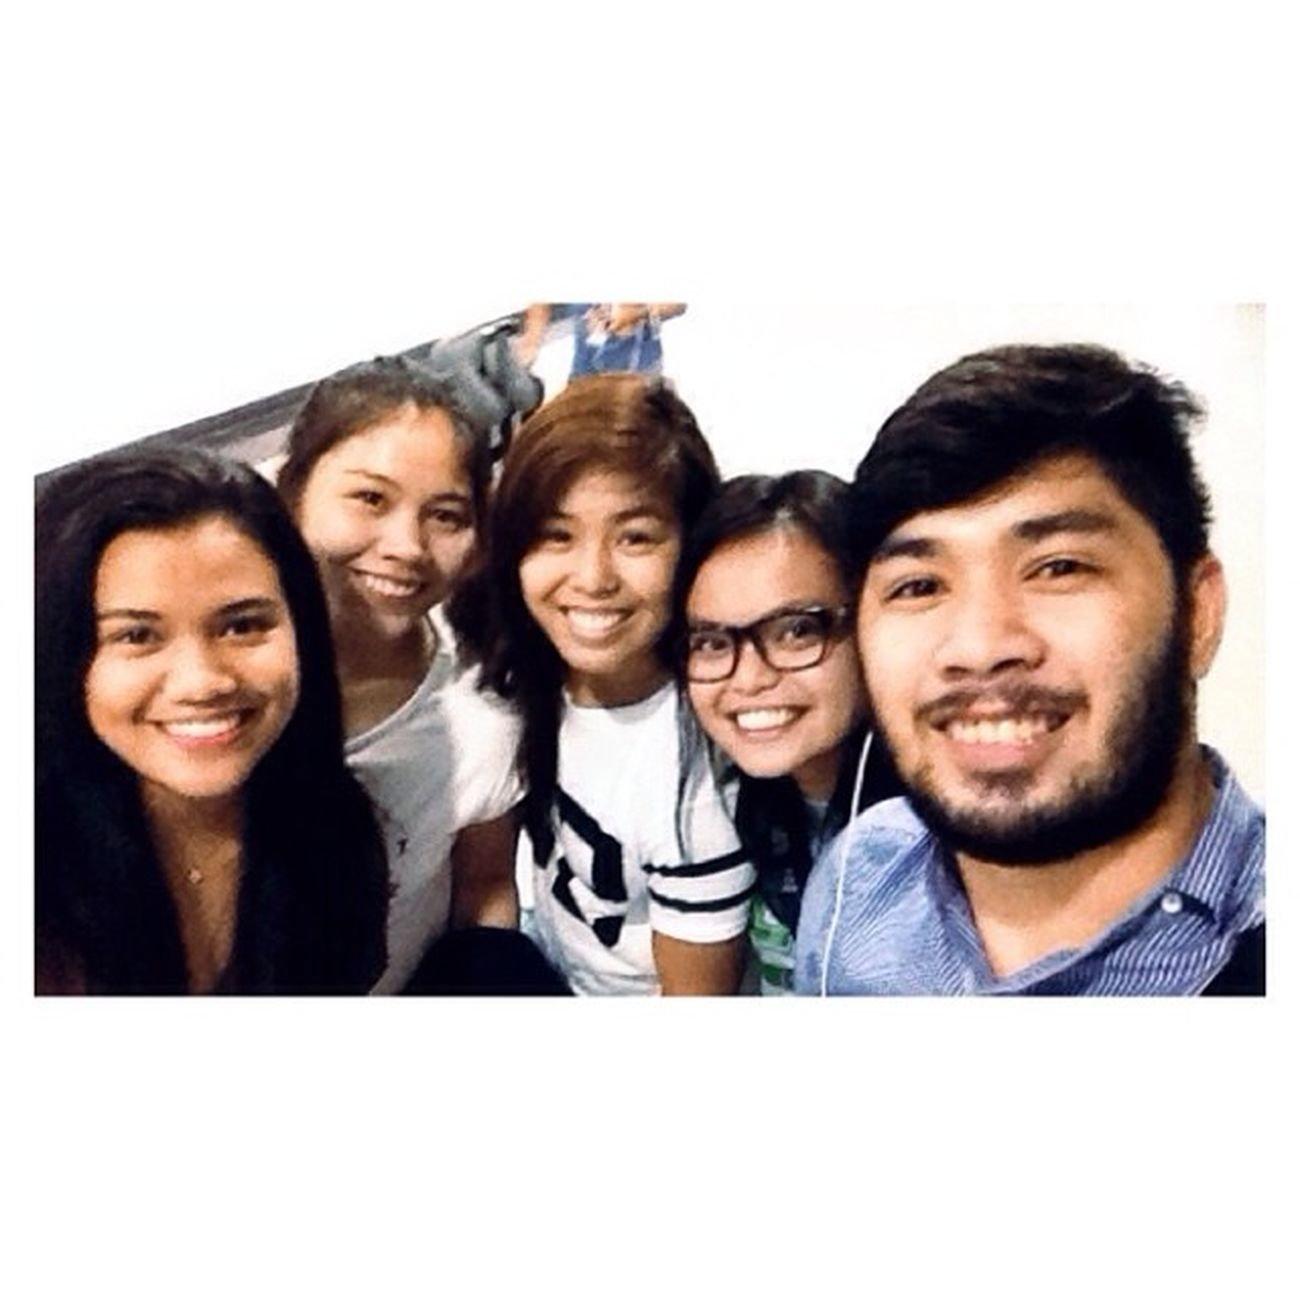 Just arrived in Davao with these gals! :) Manilameetsdavao